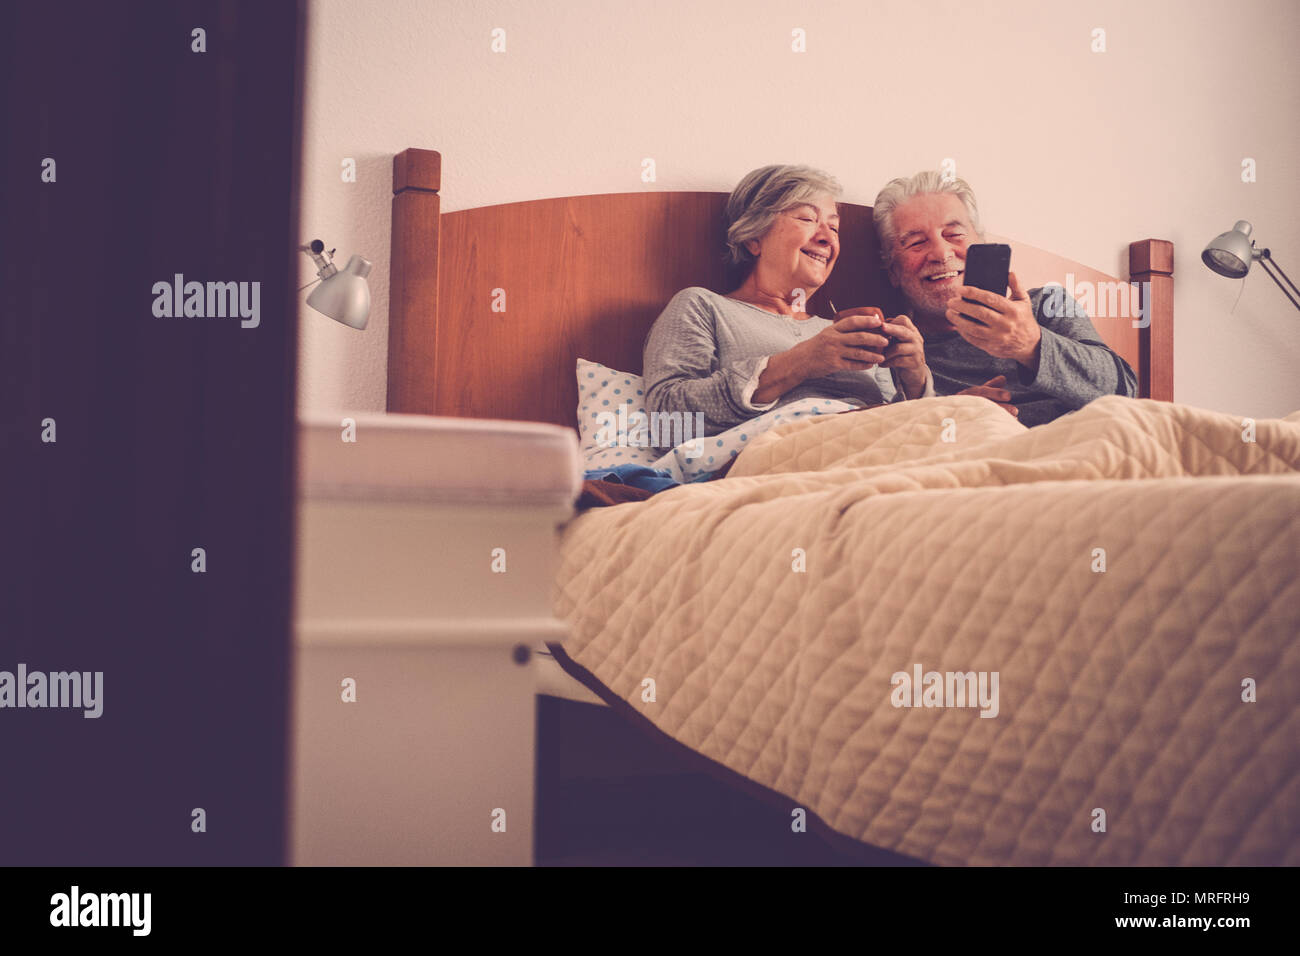 nice beautiful models couple of adult senior 70 years old having fun and enjoy in bed at home in bedroom. morning lazy wake up with no rush checking e - Stock Image